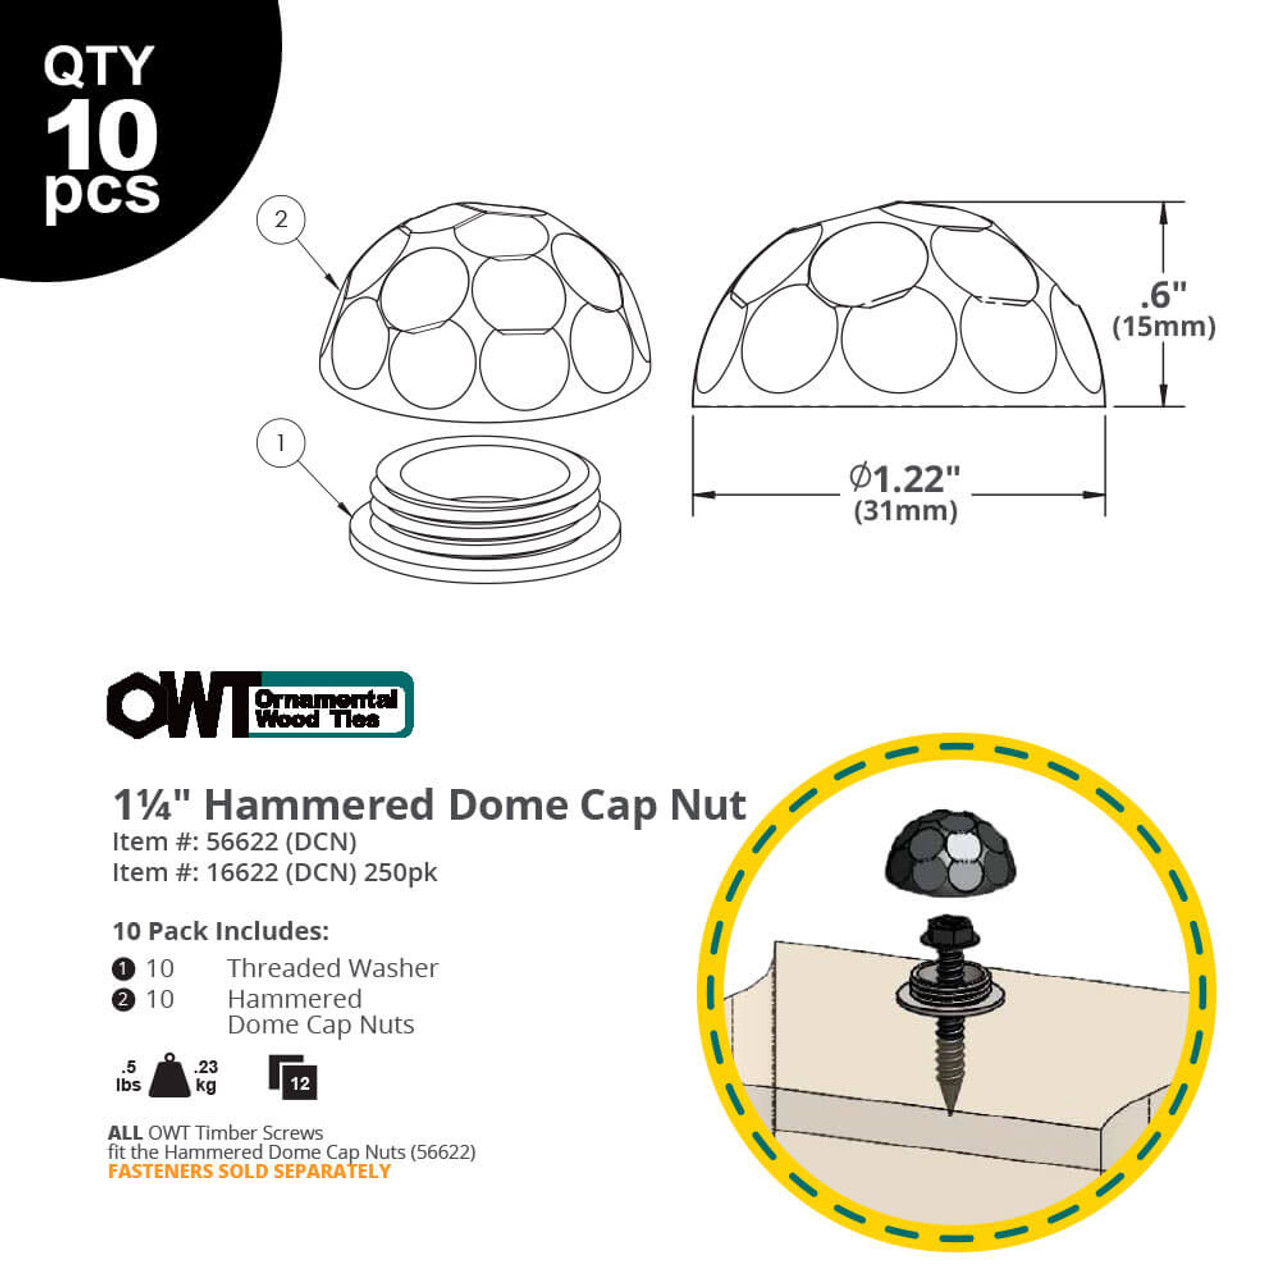 OZCO OWT Hammered Dome Cap Nut Dimension Drawing